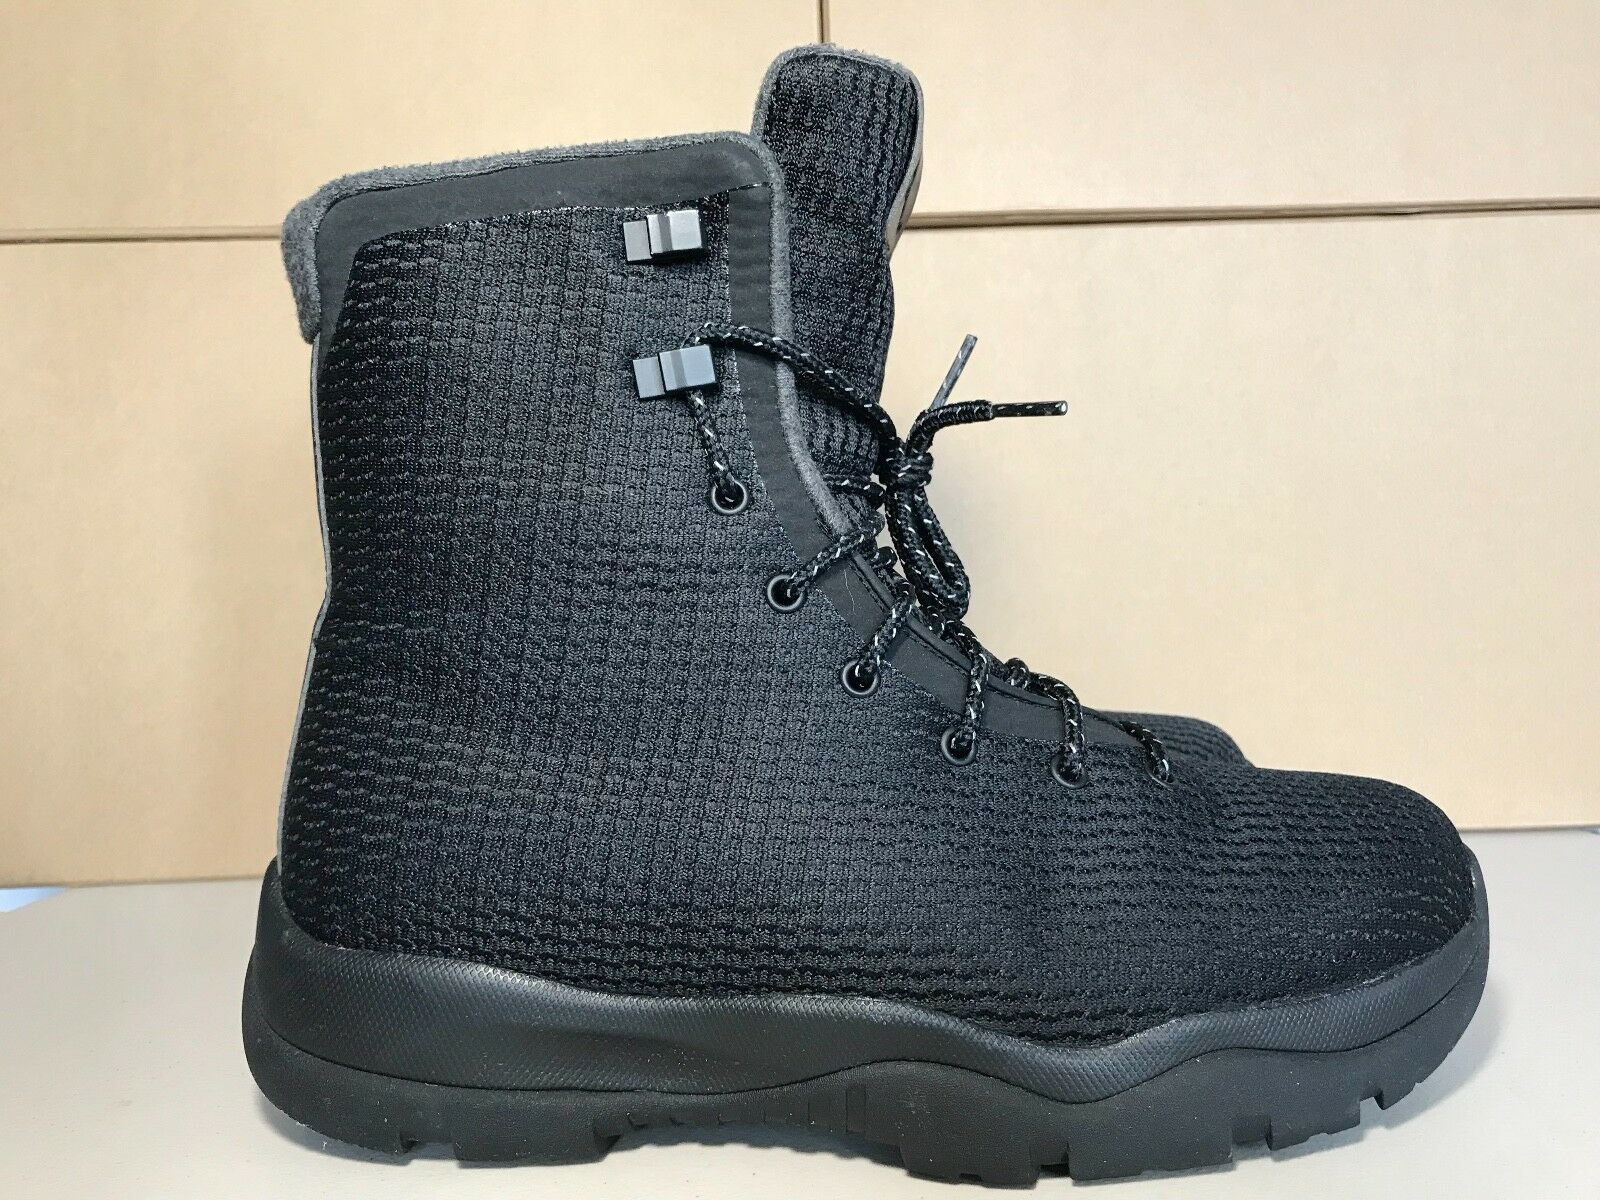 AIR JORDAN FUTURE BOOT HIGH MENS BOOT SHOE Size BLACK GREY Size SHOE 9 854554-002 64c1ad